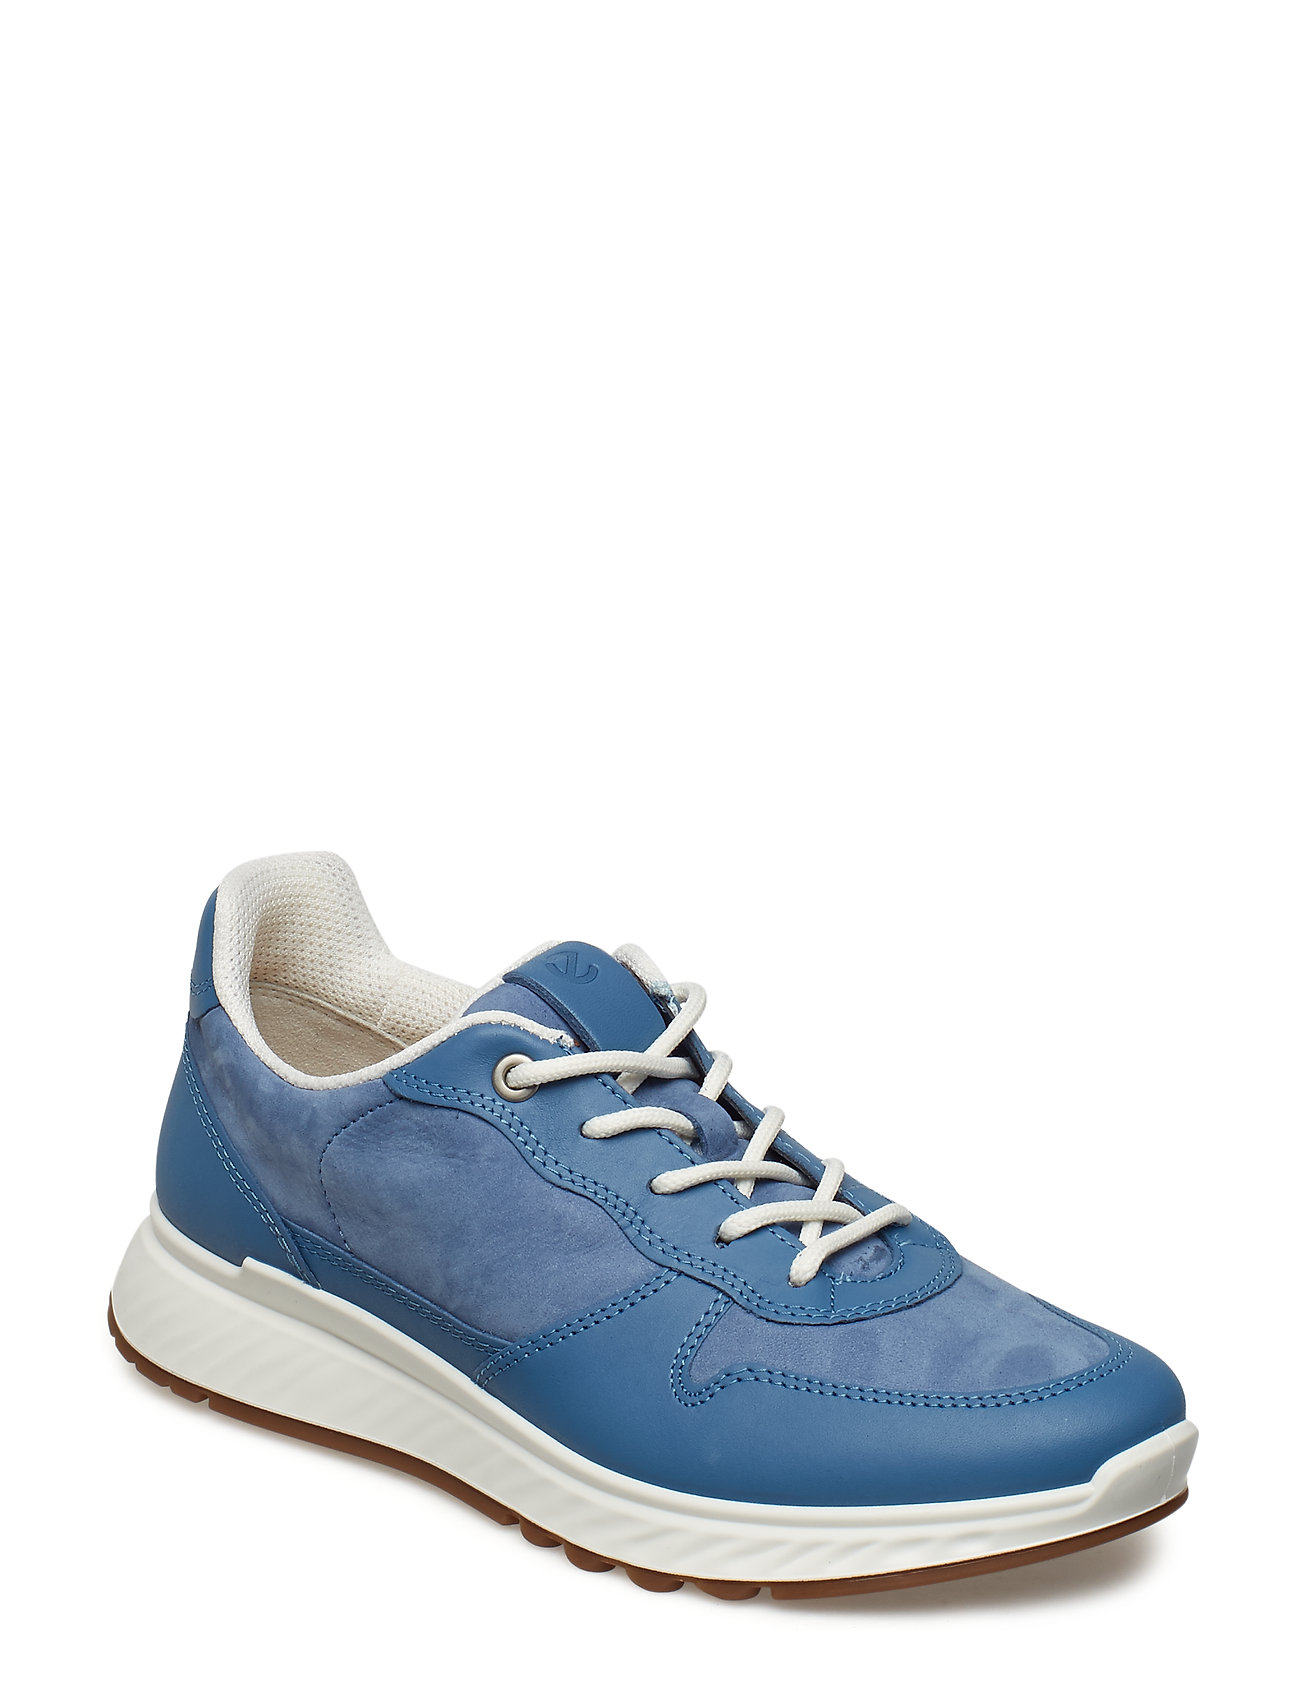 Image of St.1 W Low-top Sneakers Blå ECCO (3138615331)